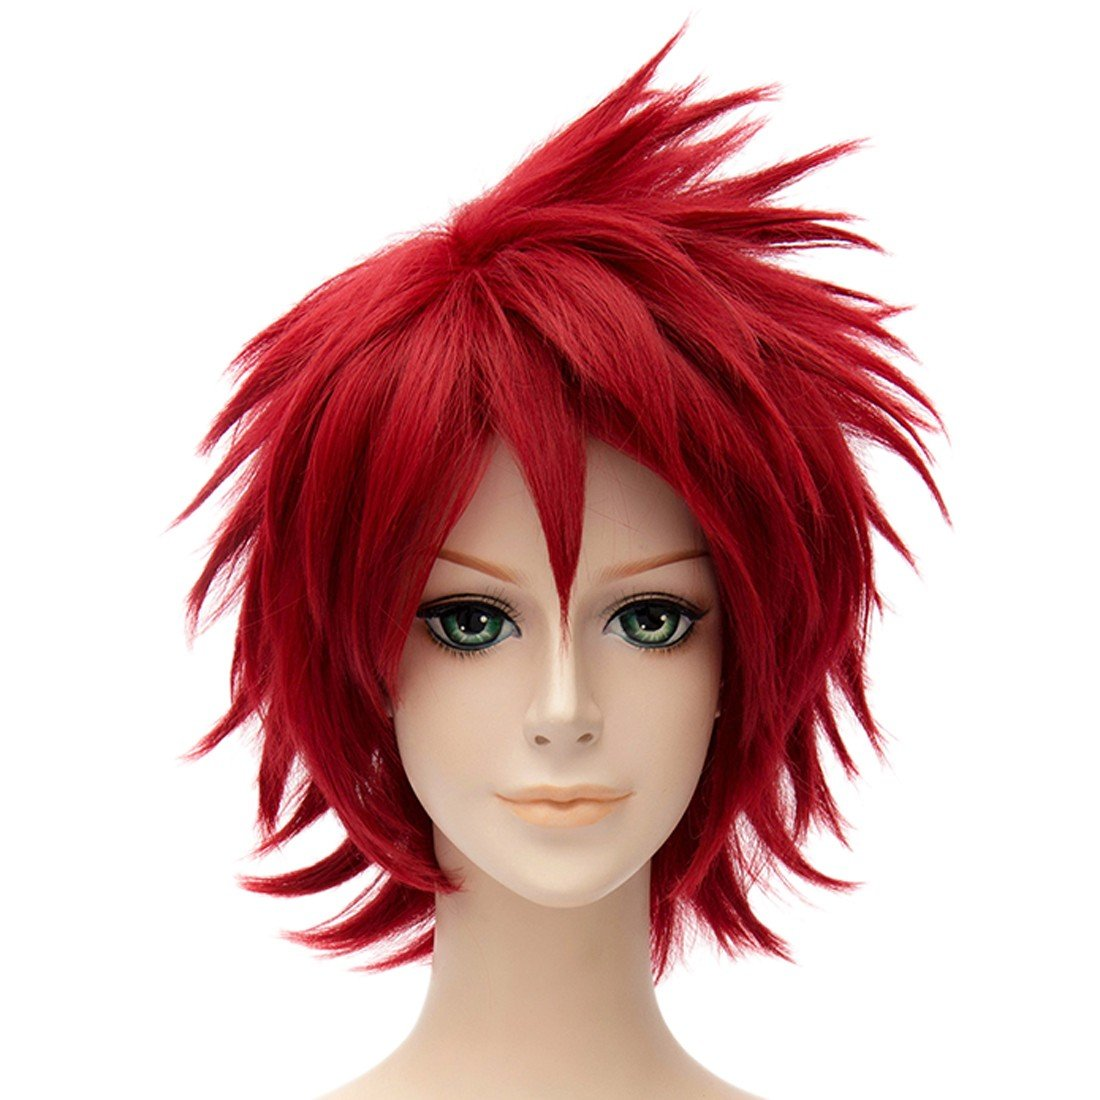 Naruto Sasori Red Short Wavy Cosplay Full Wig Cosplay Costume Resistant Perruque QIYUN.Z W111A1184/1ONE